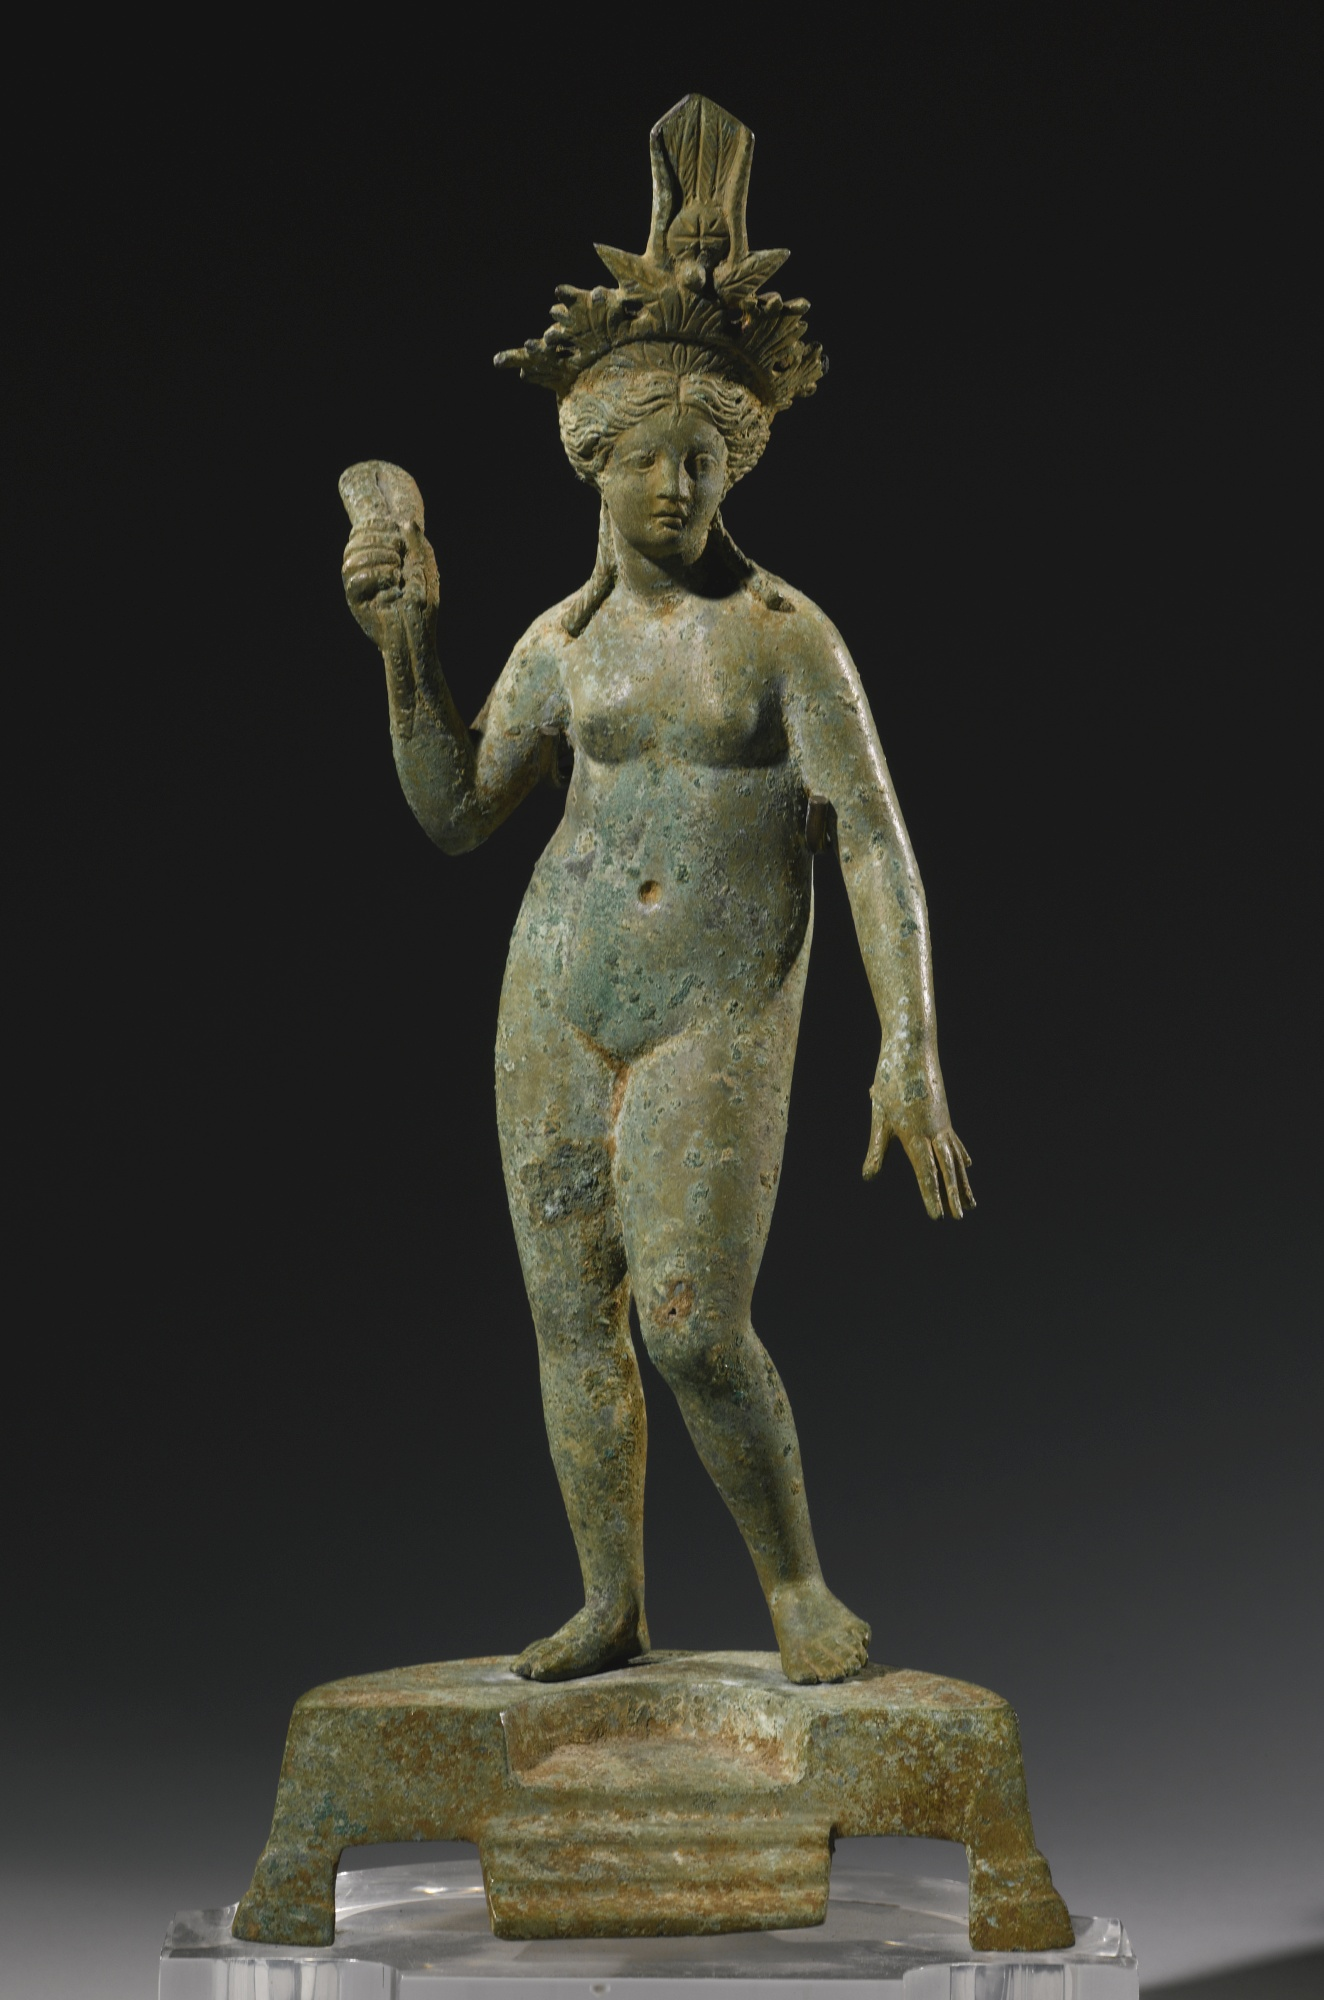 naked Inanna depicted many ways, 8-pointed star of Venus on her headdress